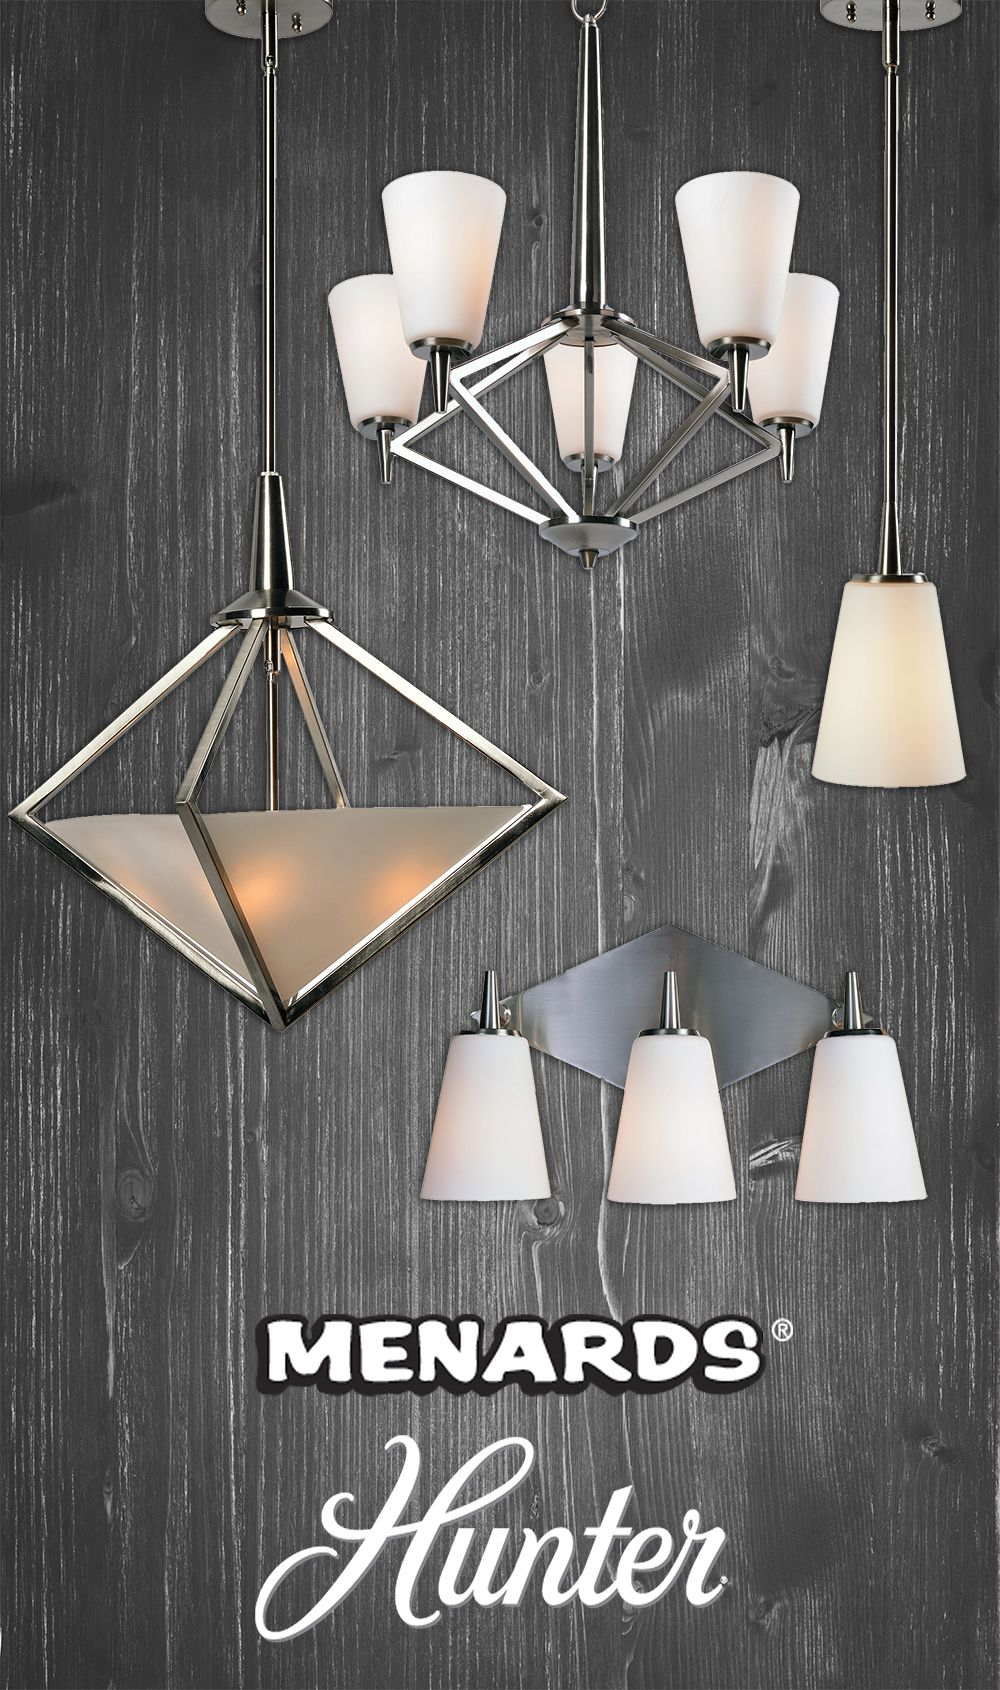 The Hunter Lighting Hedron Collection Offers An